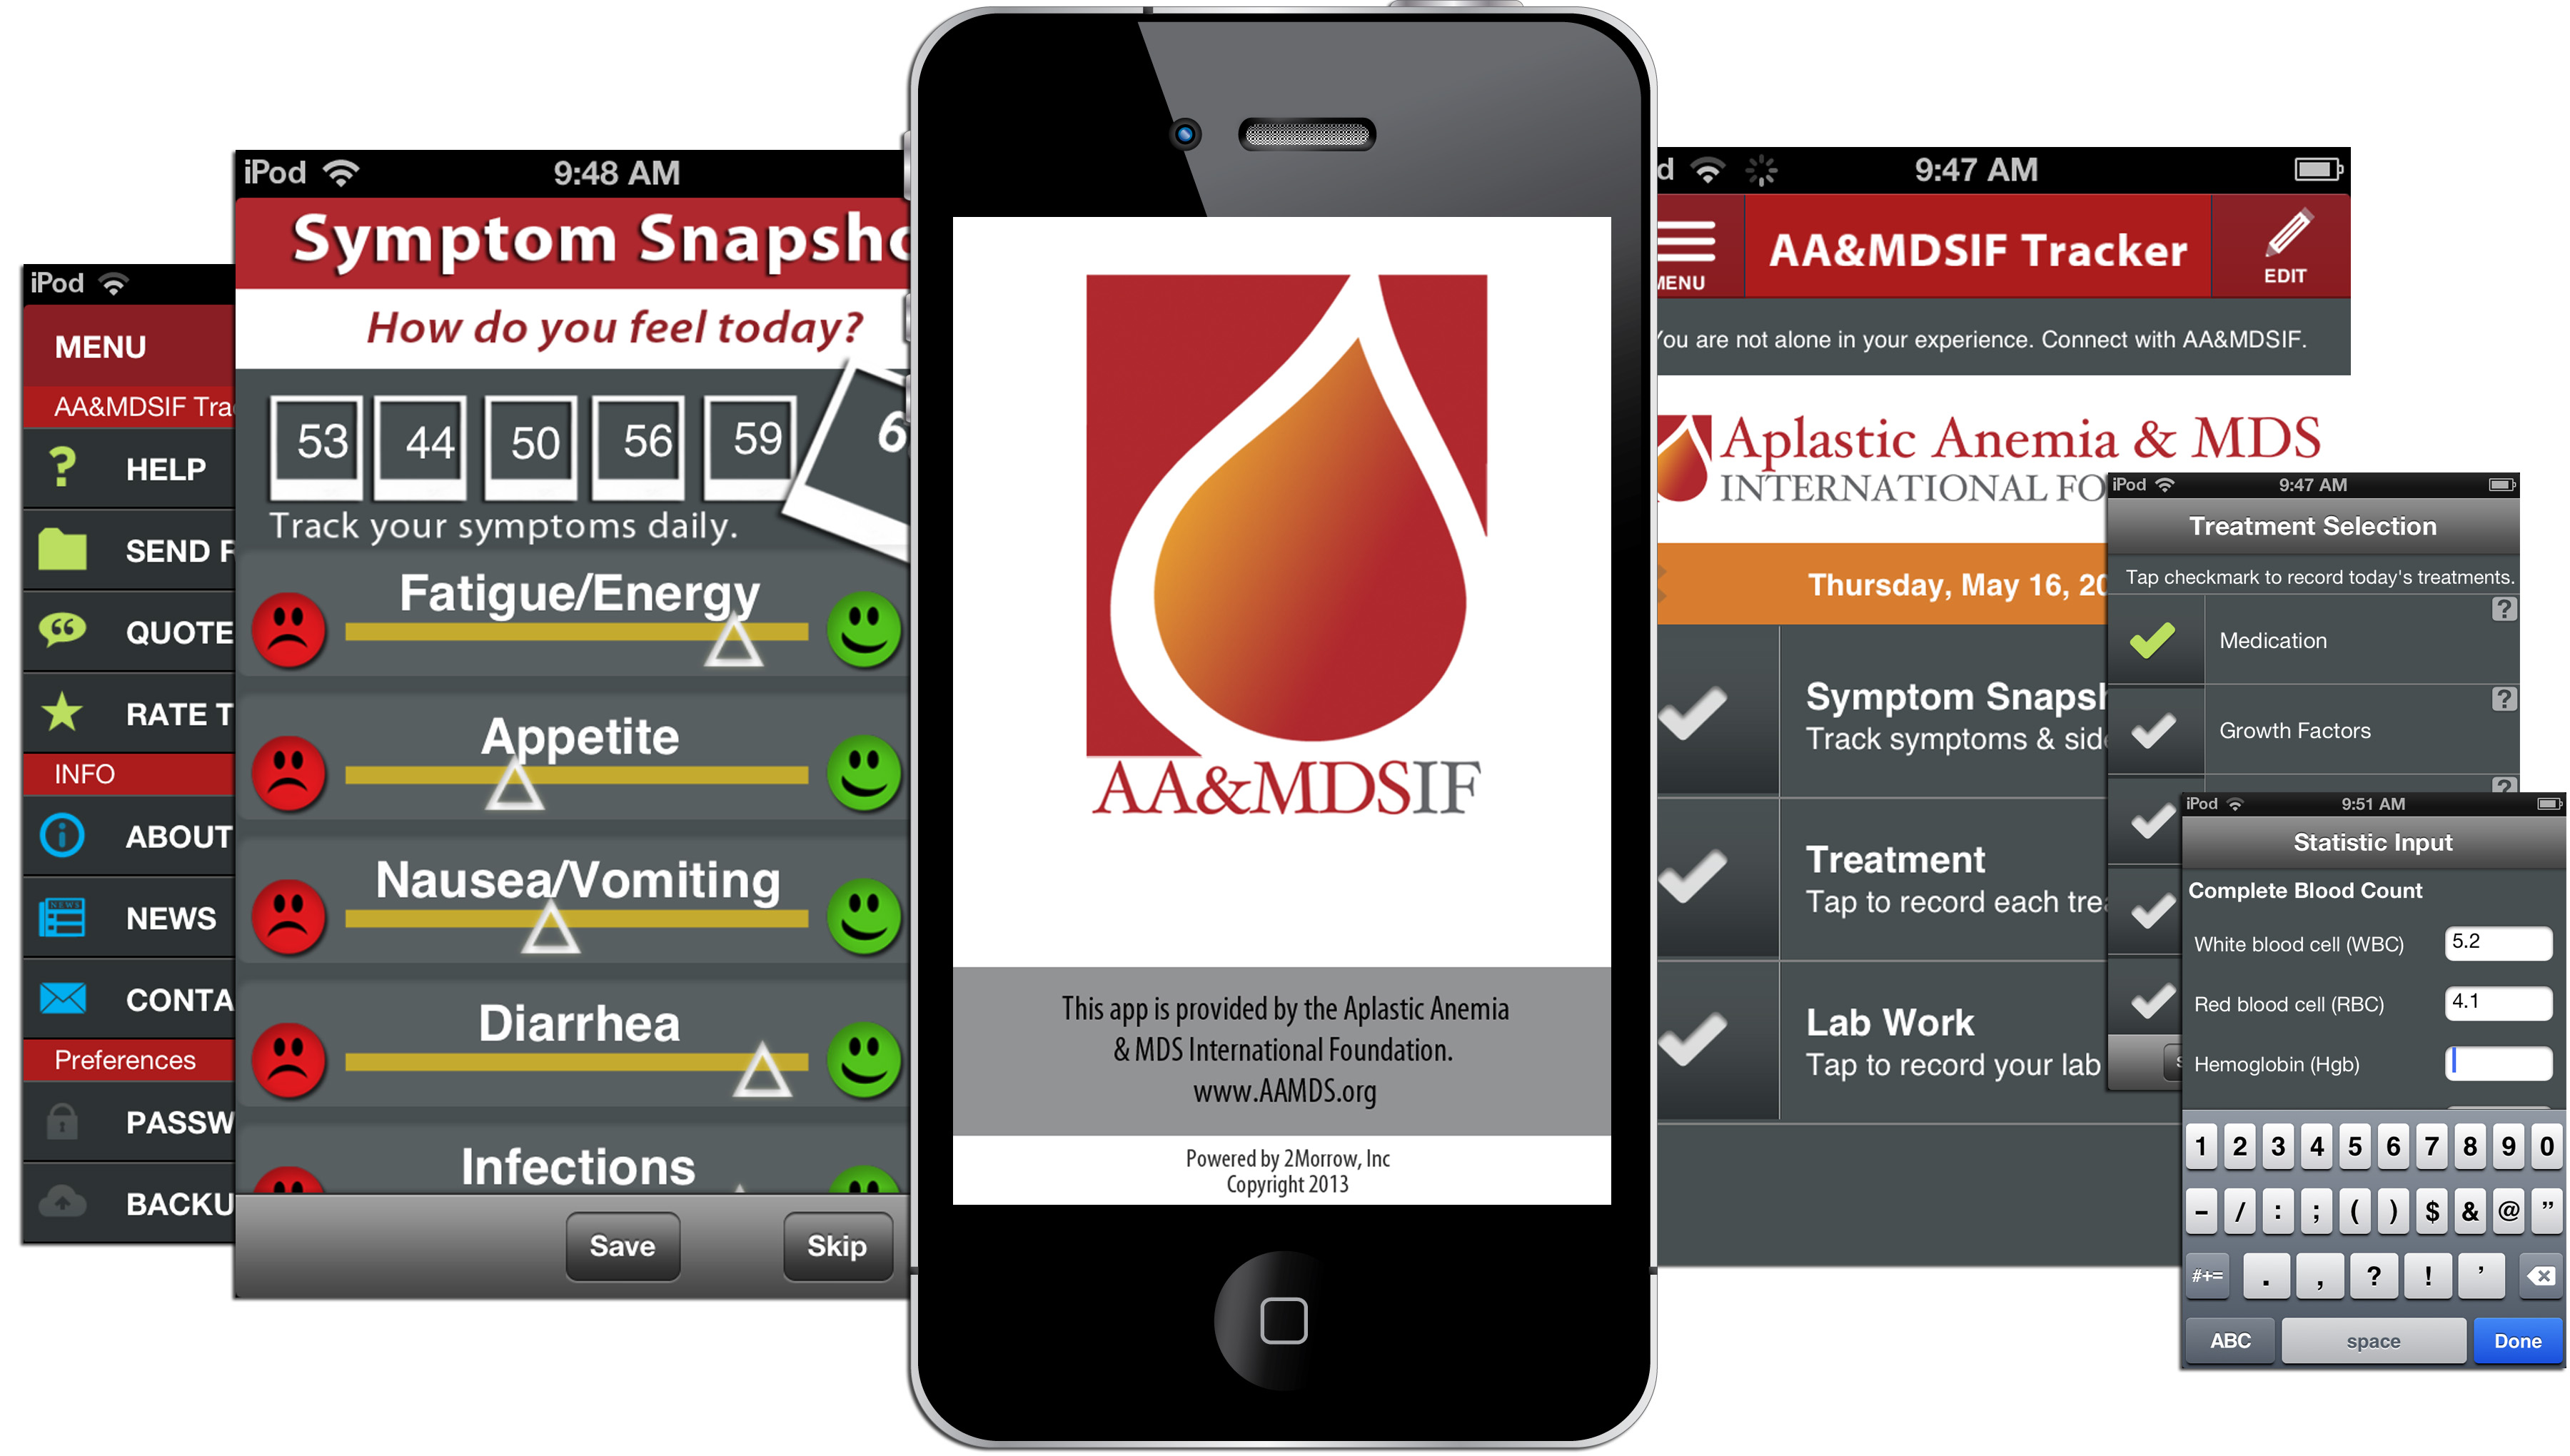 Symptom tracker app for patients with rare bone marrow diseases aims to improve outcomes